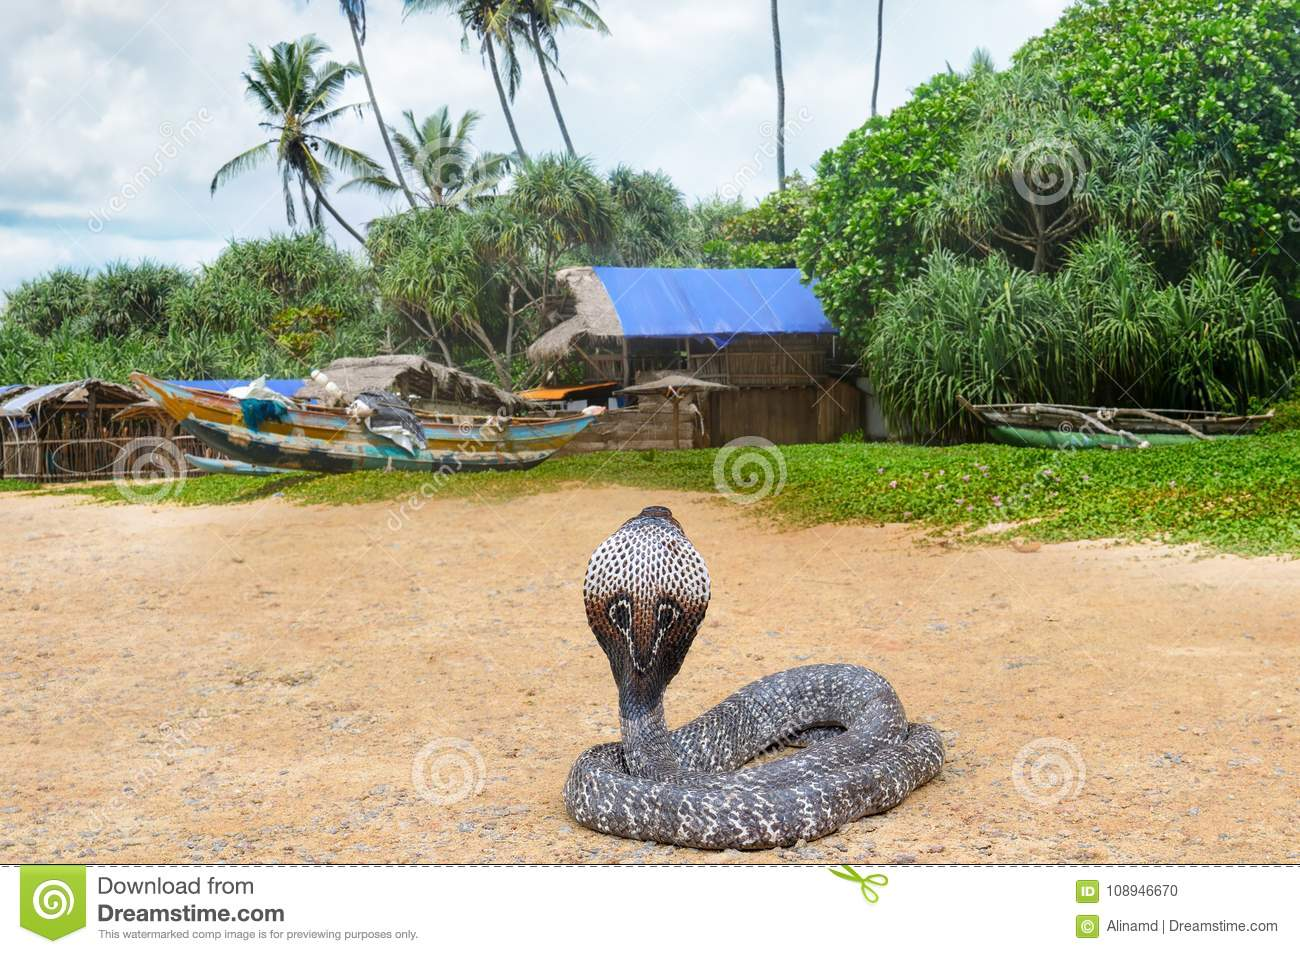 King Cobra In The Wild Nature  Stock Photo - Image of cobra